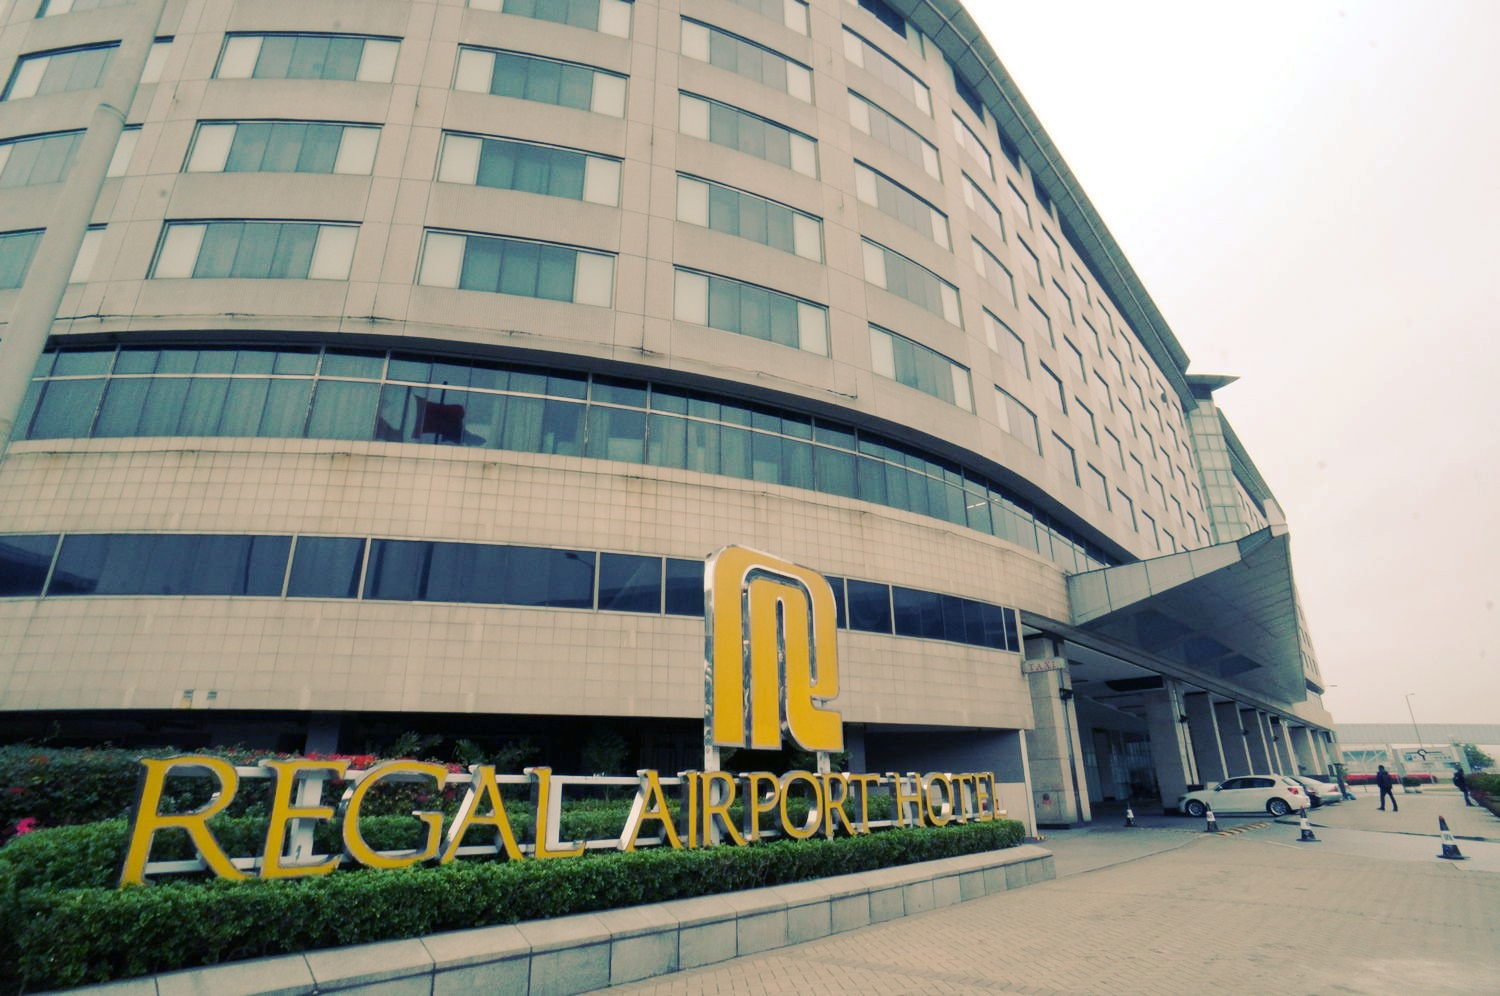 Best Airport Hotel voted by readers of Business Traveller  regal hotel  FlyerTalk Forums